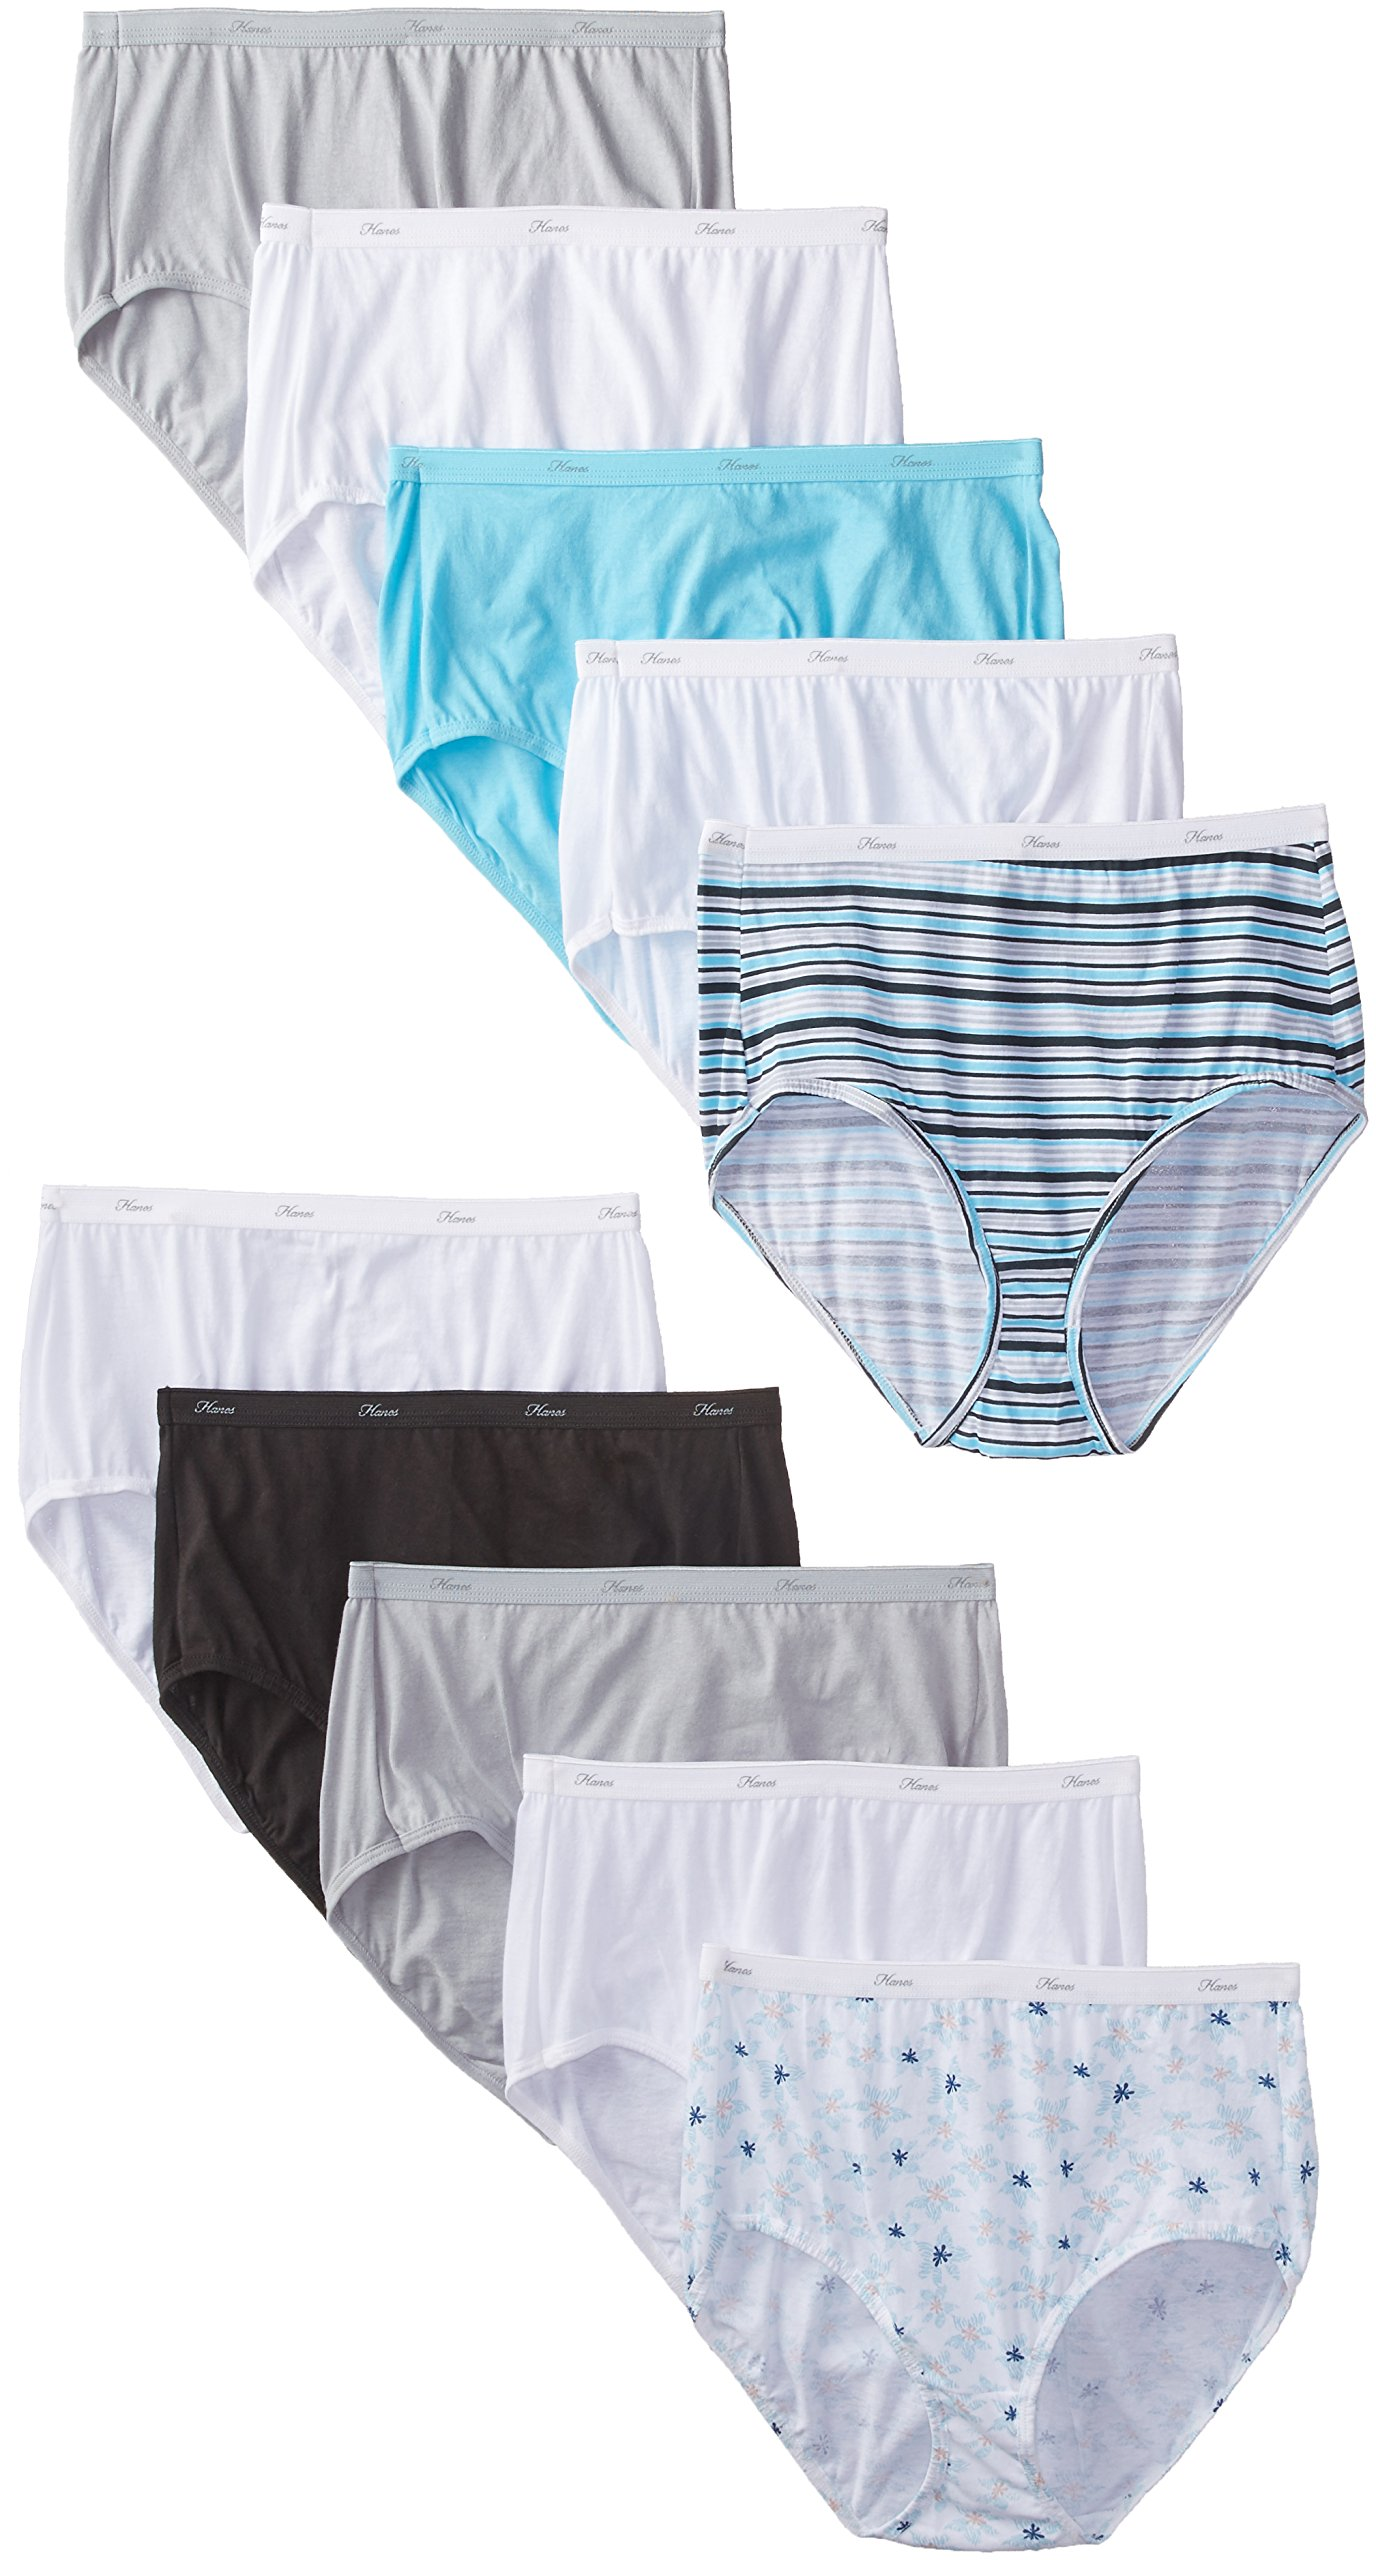 Hanes Women's 10 Pack Cotton Brief Panty, Assorted, Size 10